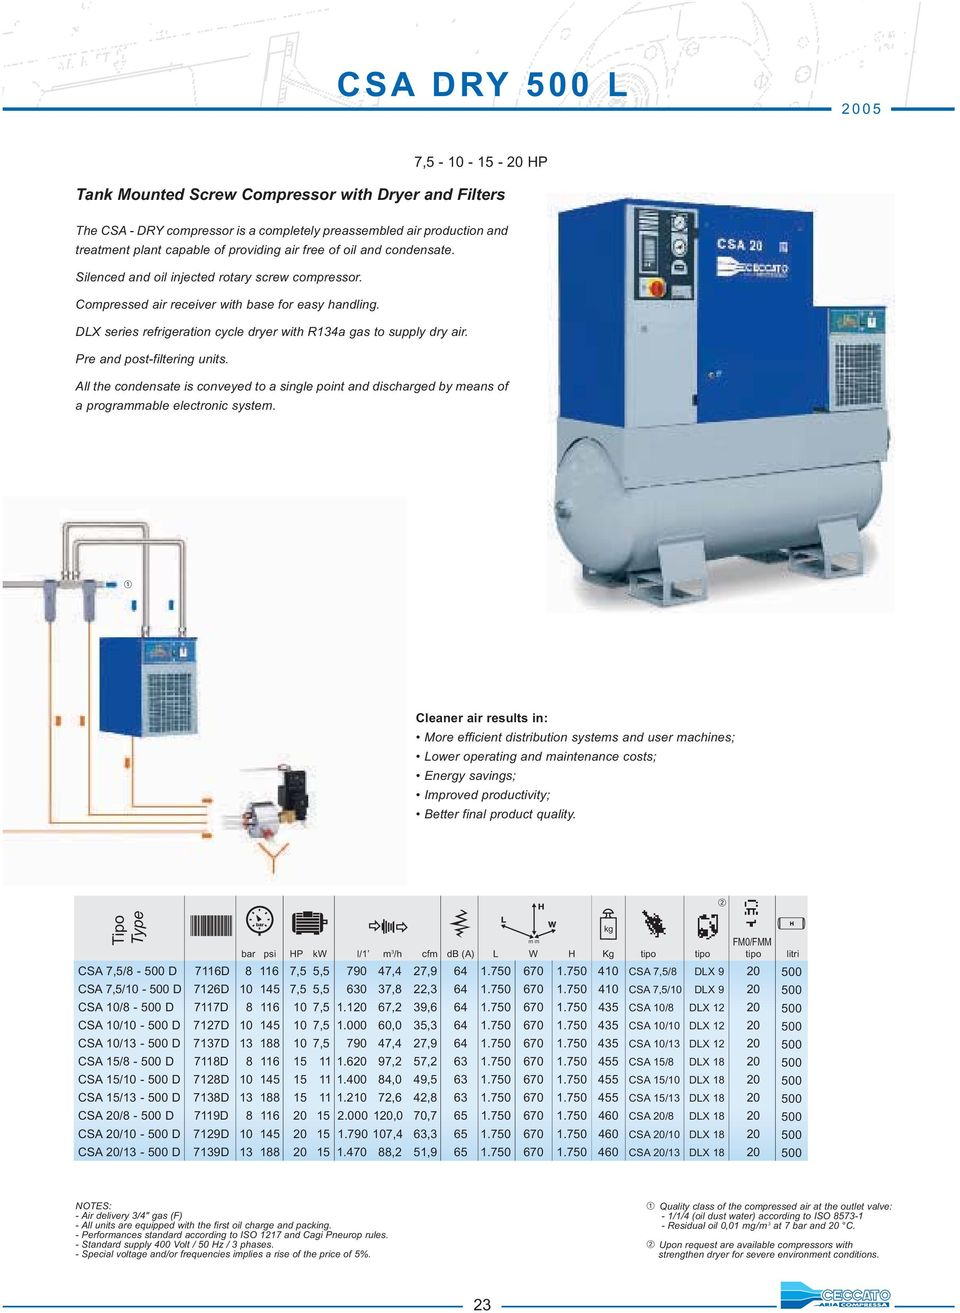 DLX series refrigeration cycle dryer with R134a gas to supply dry air. Pre and post-filtering units.